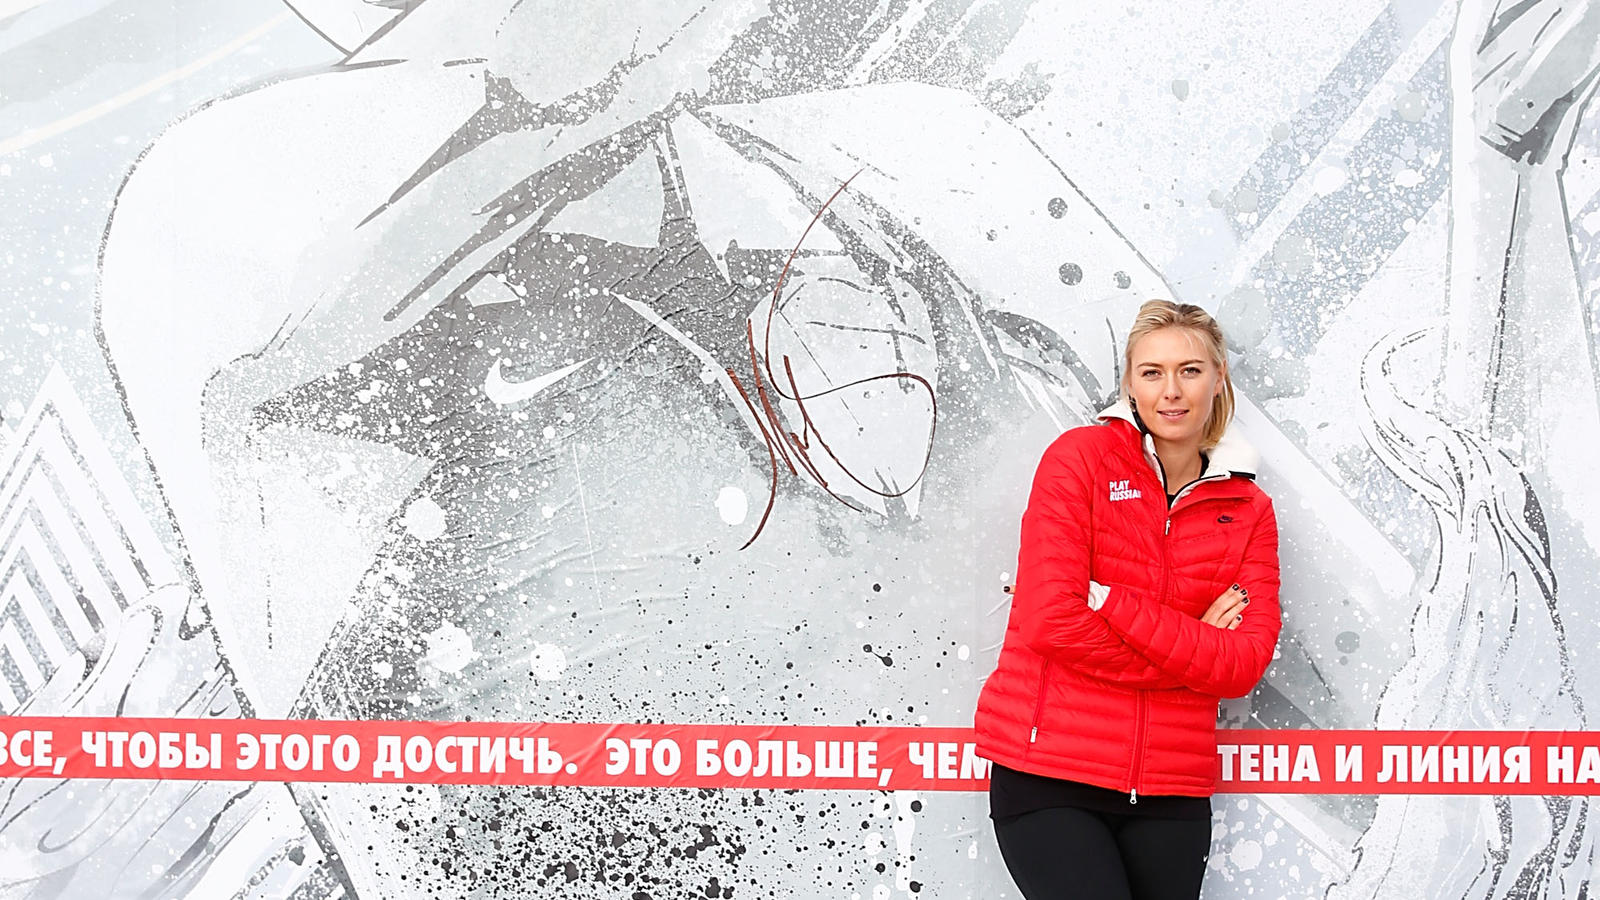 Nike welcomes Maria Sharapova home with new court